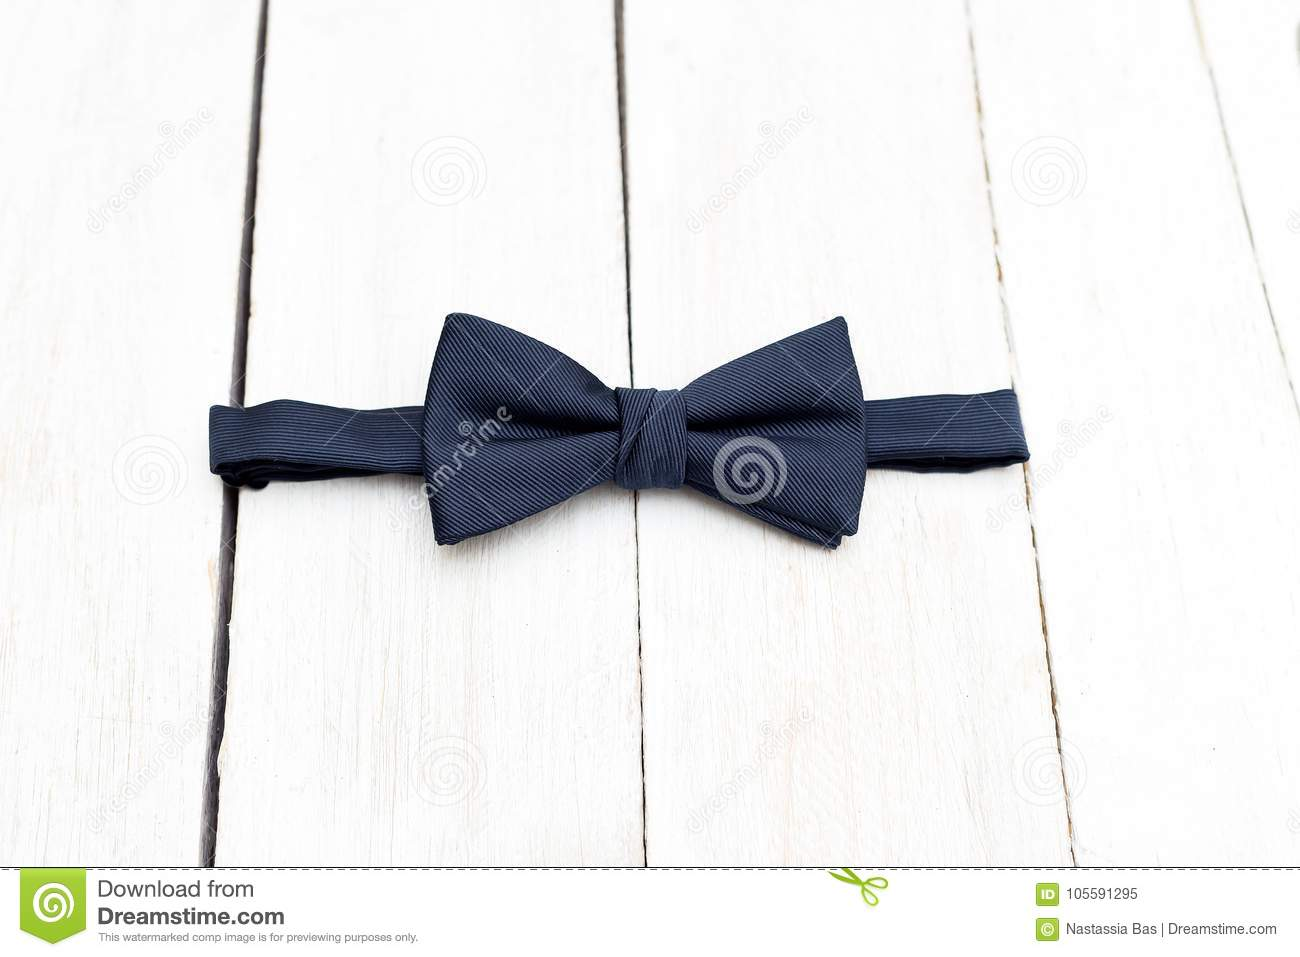 Male dark blue bow tie on a wooden background. Elements of style